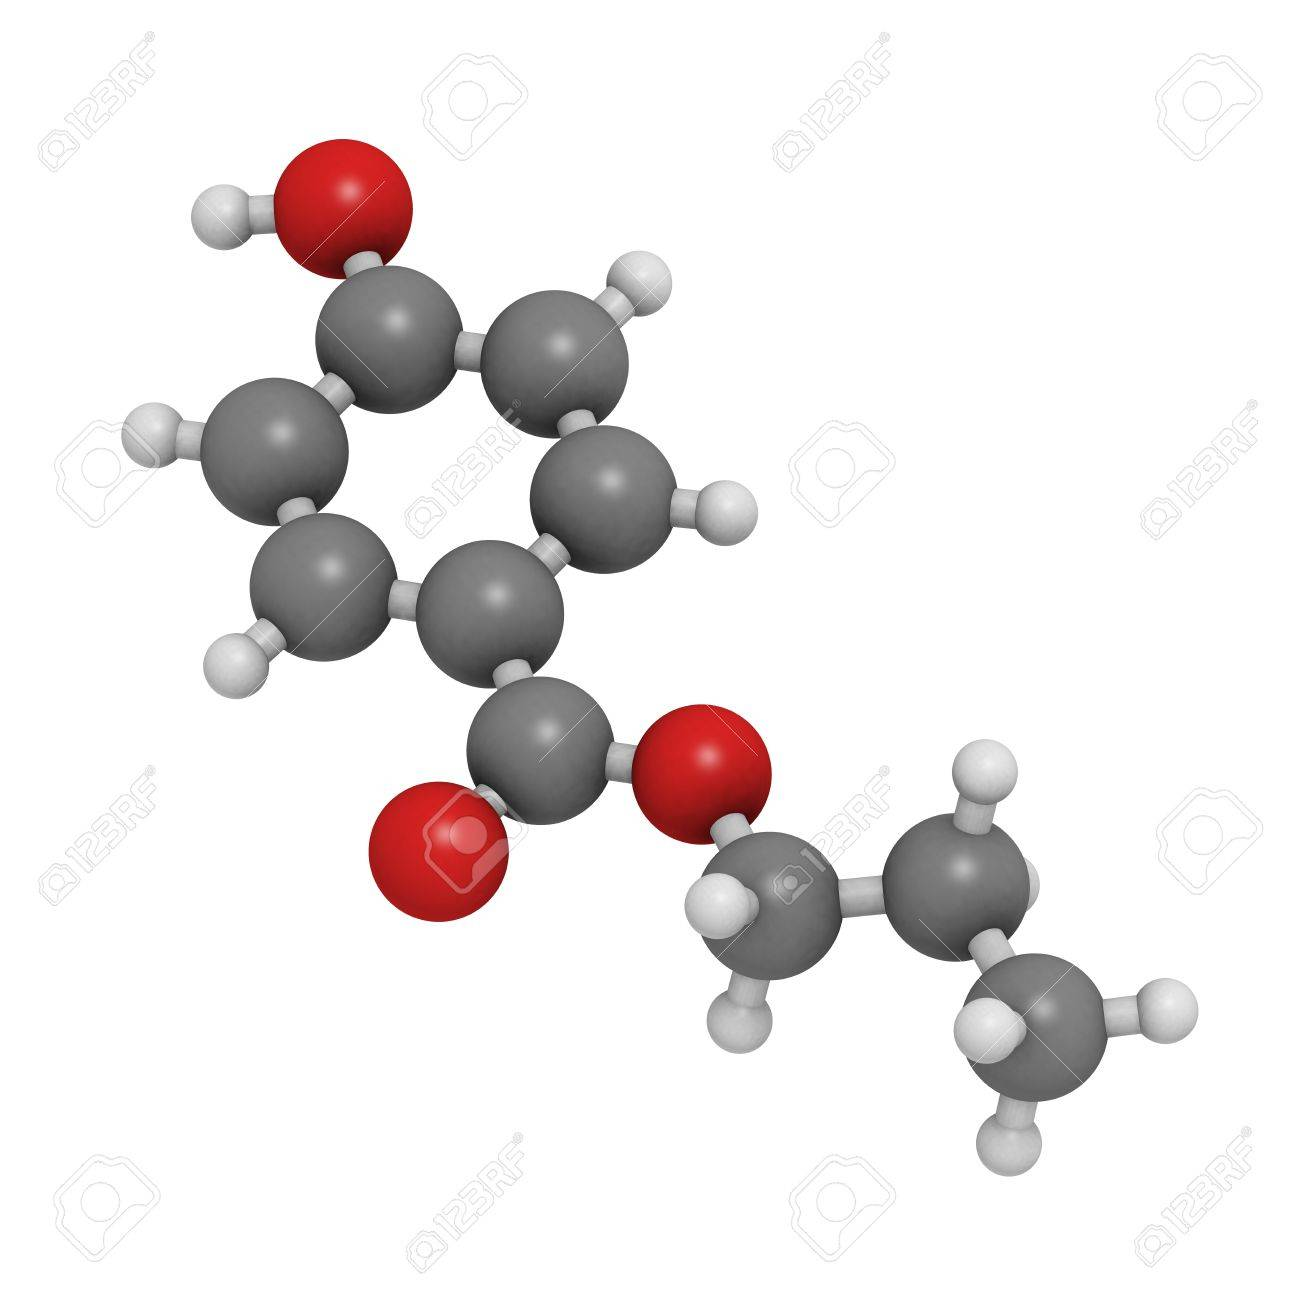 Chemical Structure Of A Molecule Of Propylparaben (E216), A Rather ...